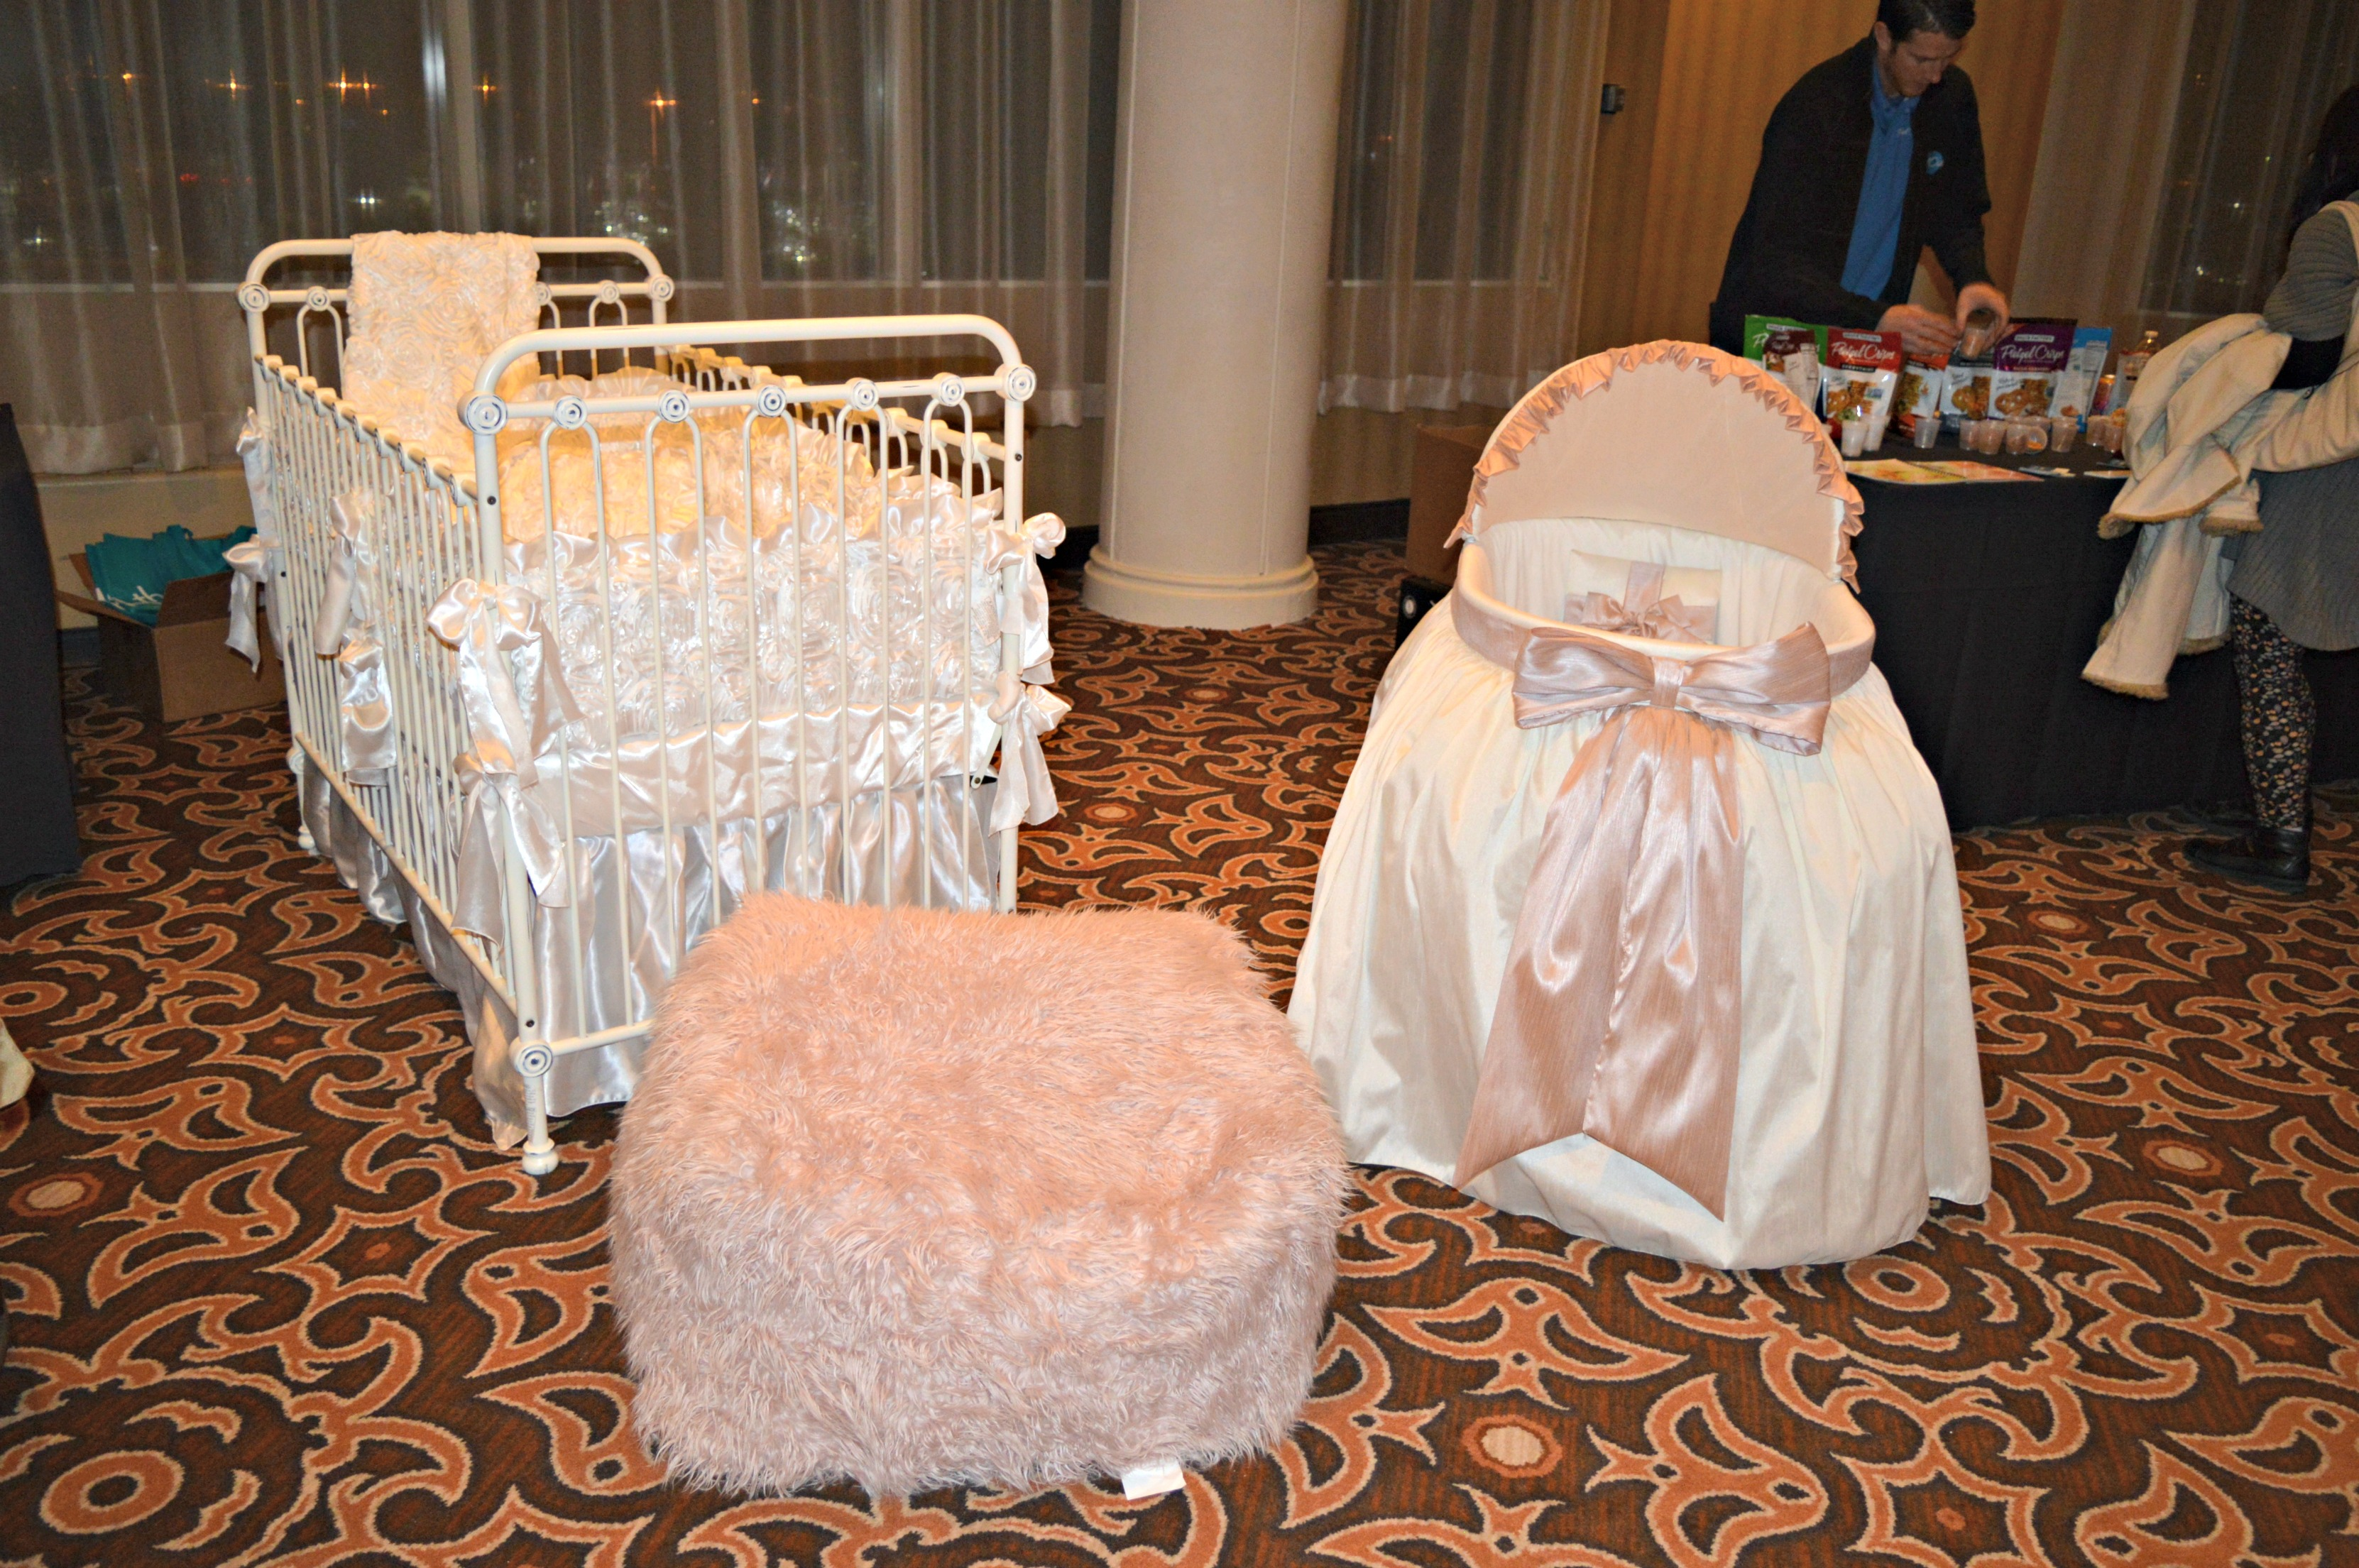 Baby Showers R Us Gwynn Oak Md ~ Mother of all baby showers washington dc: luxe edition u2014 mommys